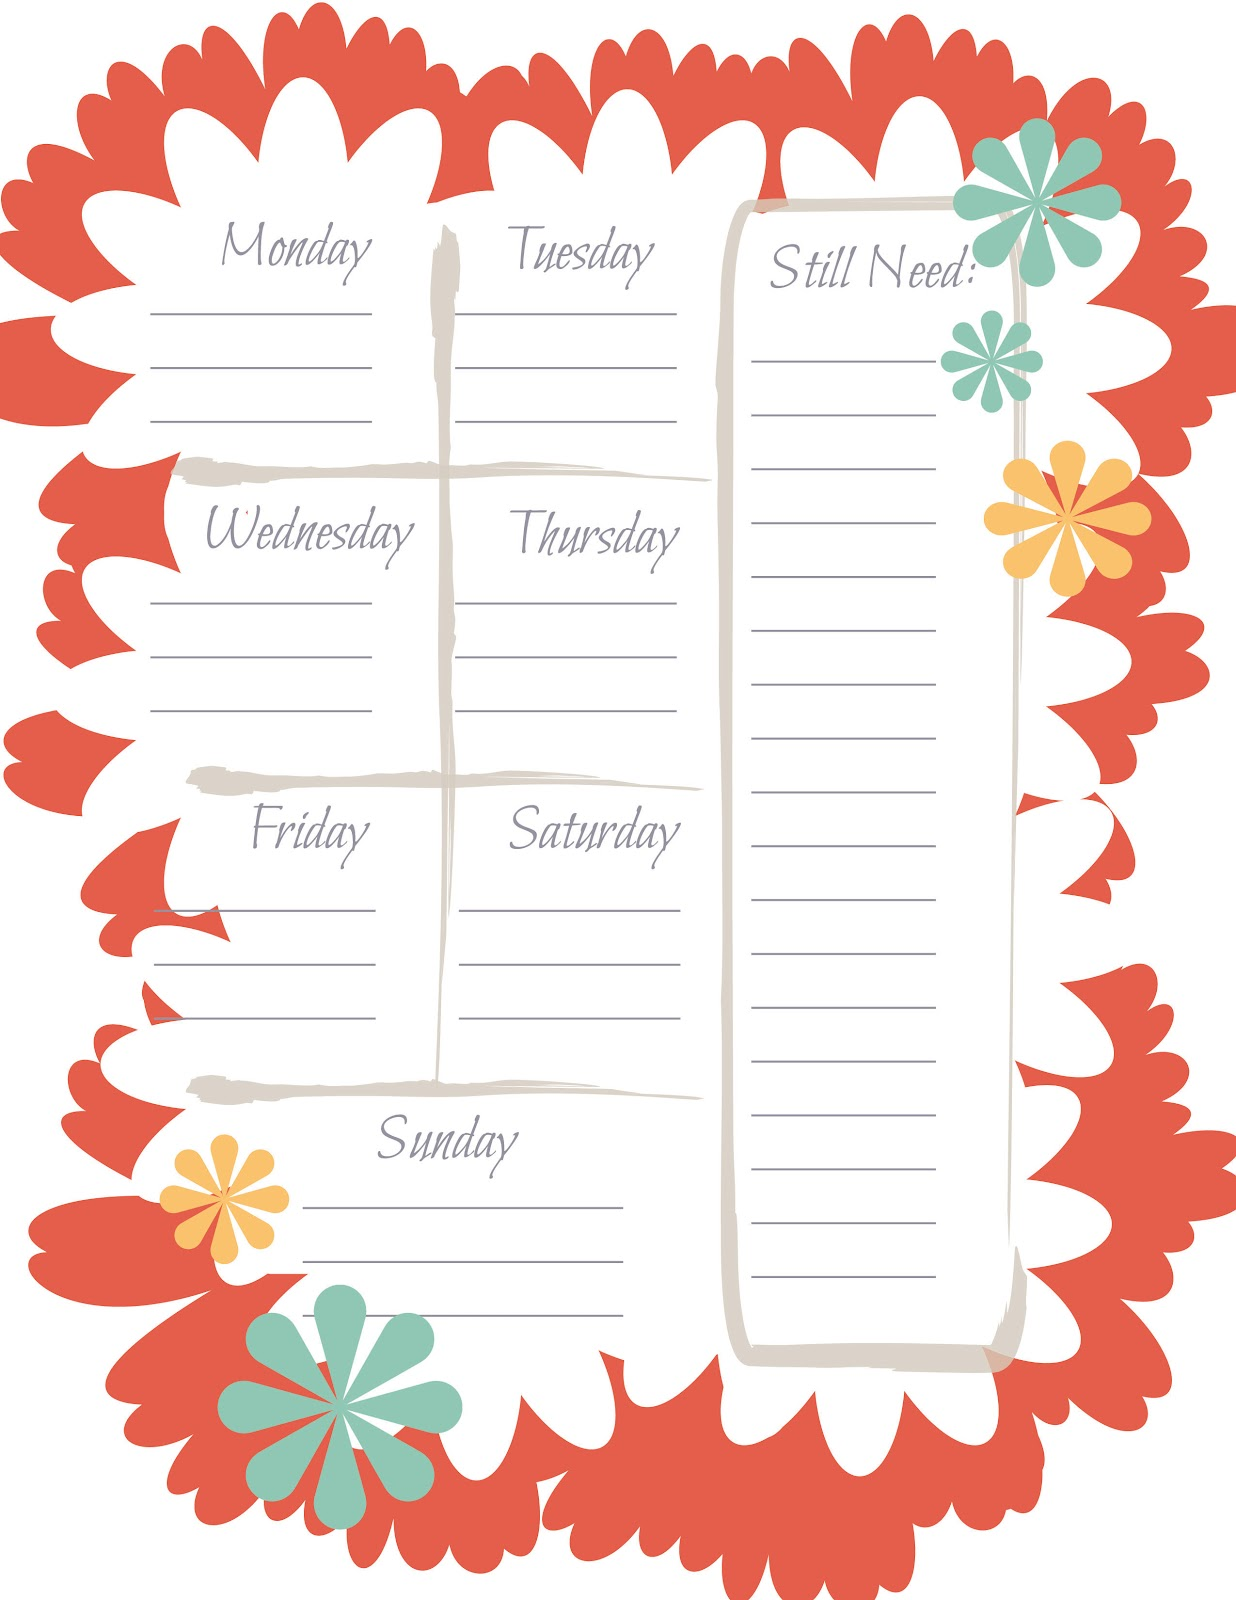 Monthly Calendars Printable Menus Dinner